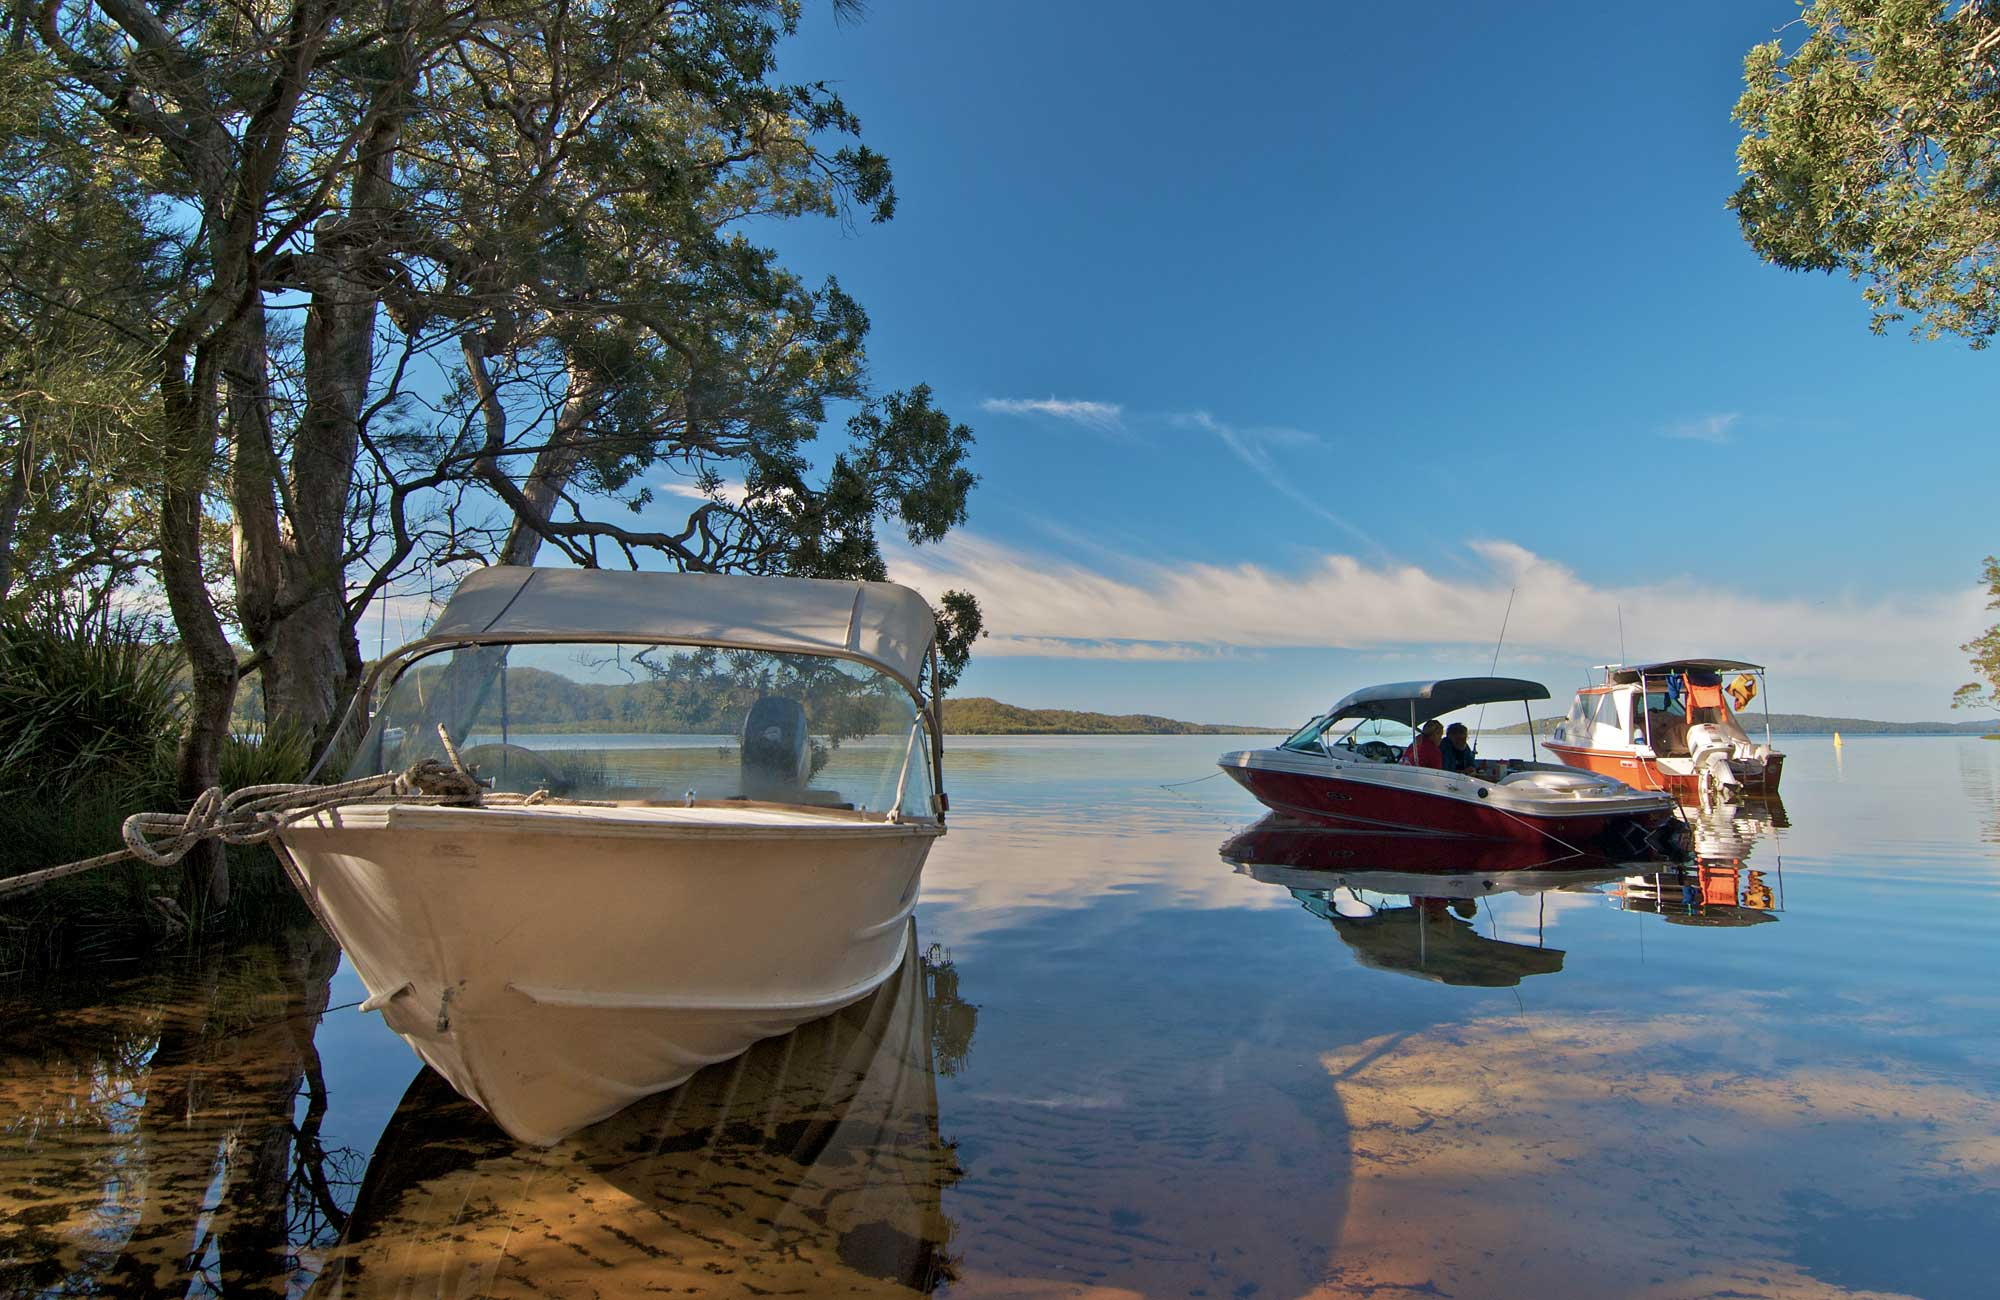 Neranie campground boats hero, Myall Lakes National Park. Photo: John Spencer/DPIE